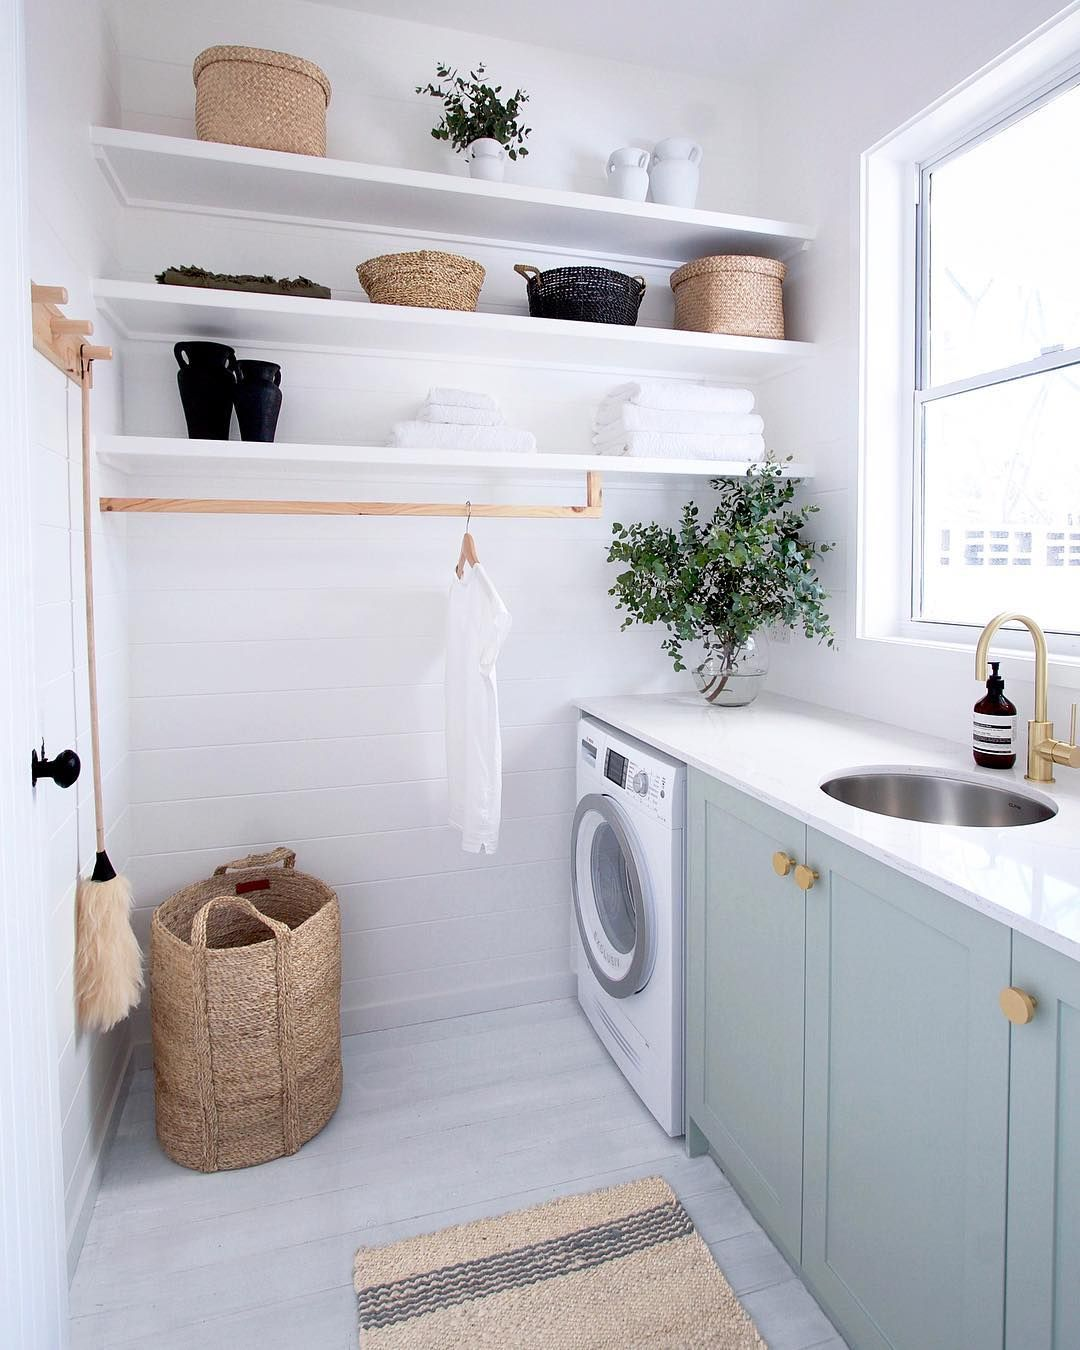 Nine very affordable ways to spruce up your laundry room and make it an inspiring place you actually want be in also laundryroom our custom designed built accommodate rh pinterest